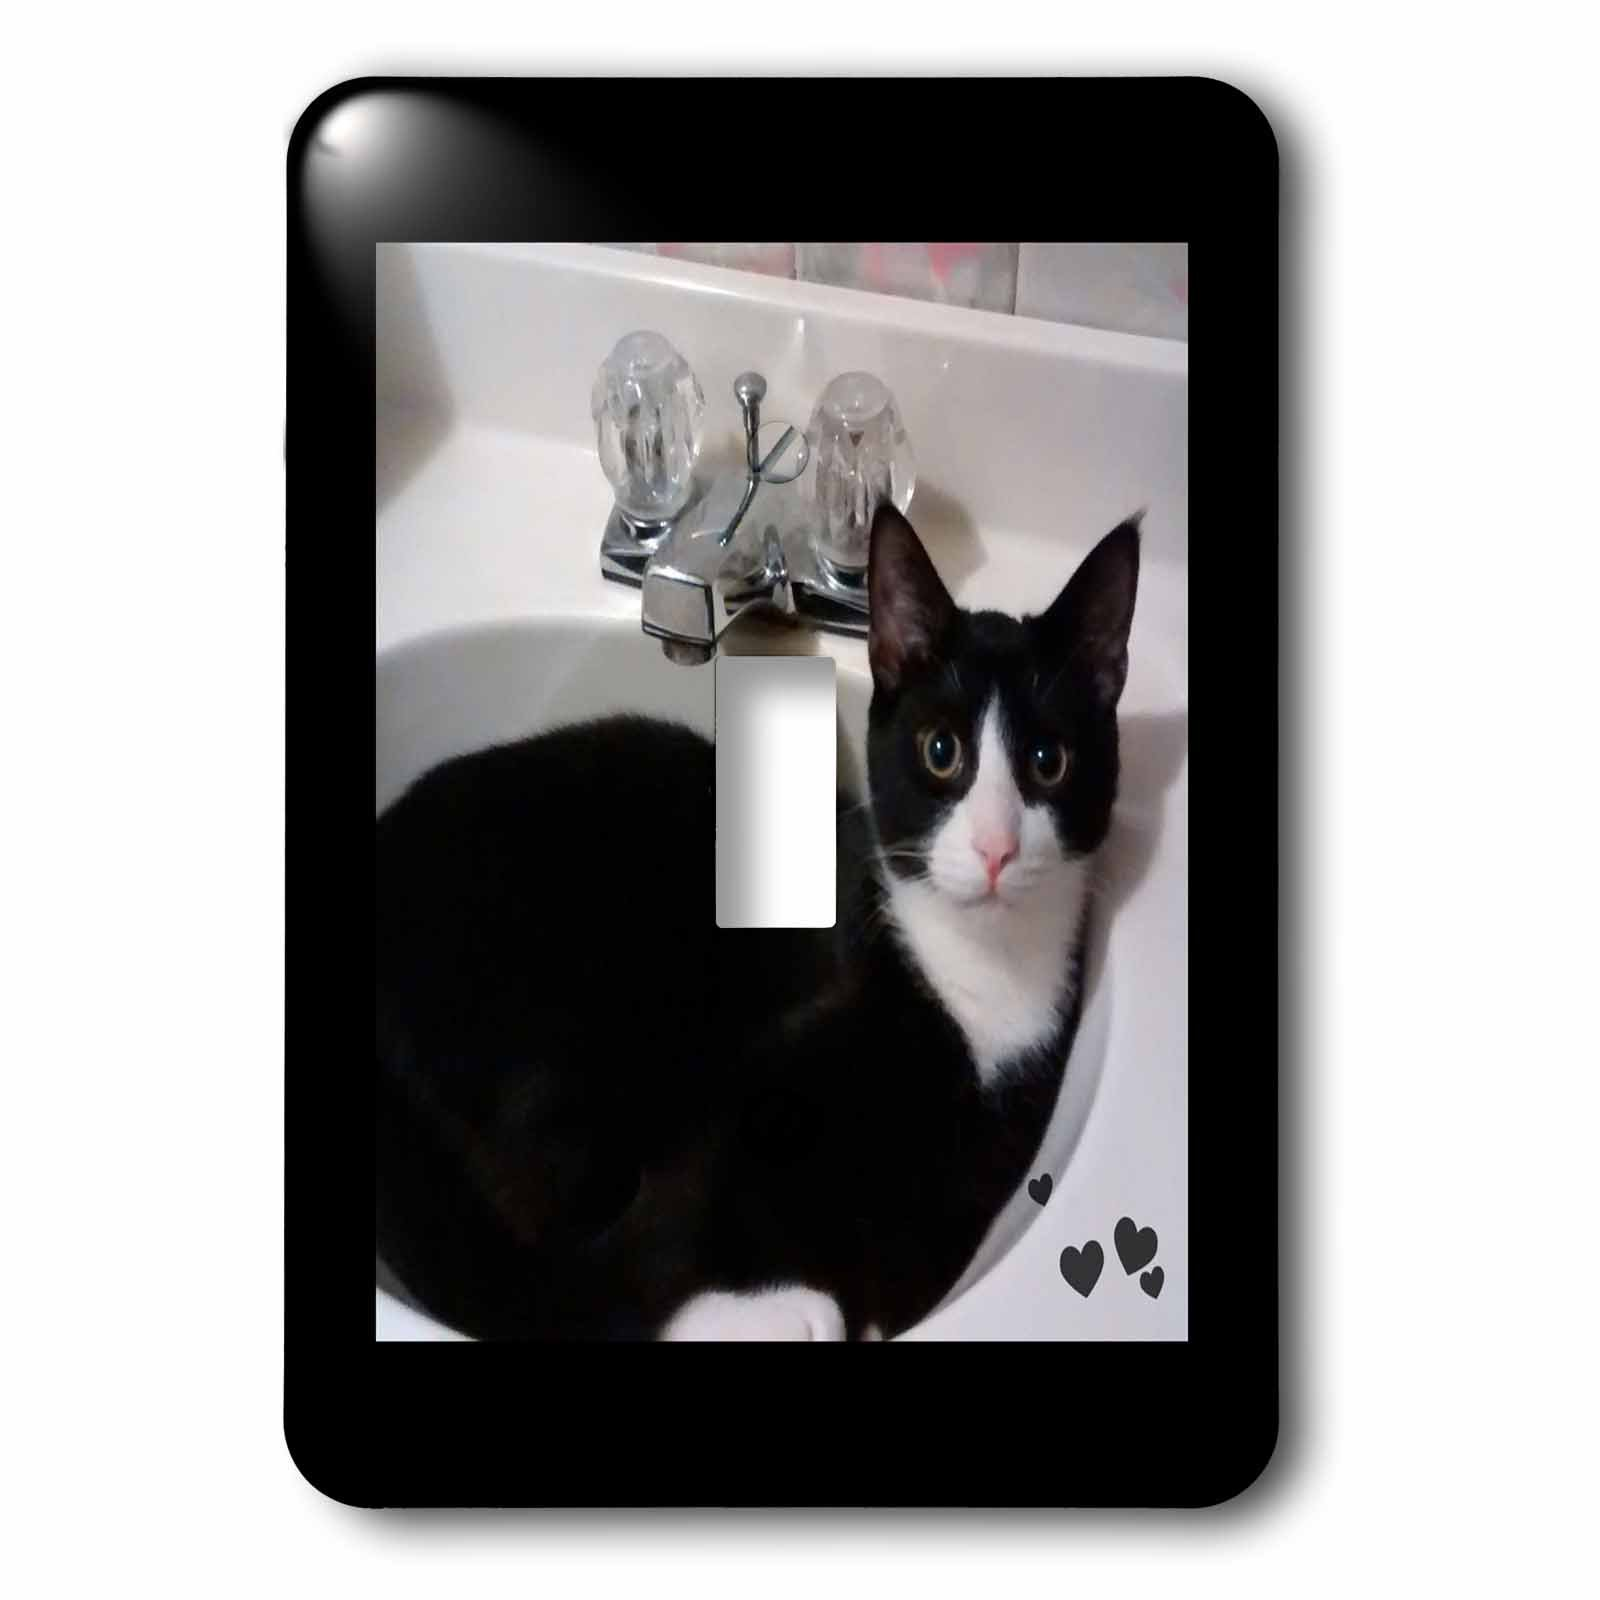 Charlyn Woodruff - CW Designs - Cat Photography - Cute Black White Tux Cat Curled up in Sink Photo - Light Switch Covers - single toggle switch (lsp_242428_1)